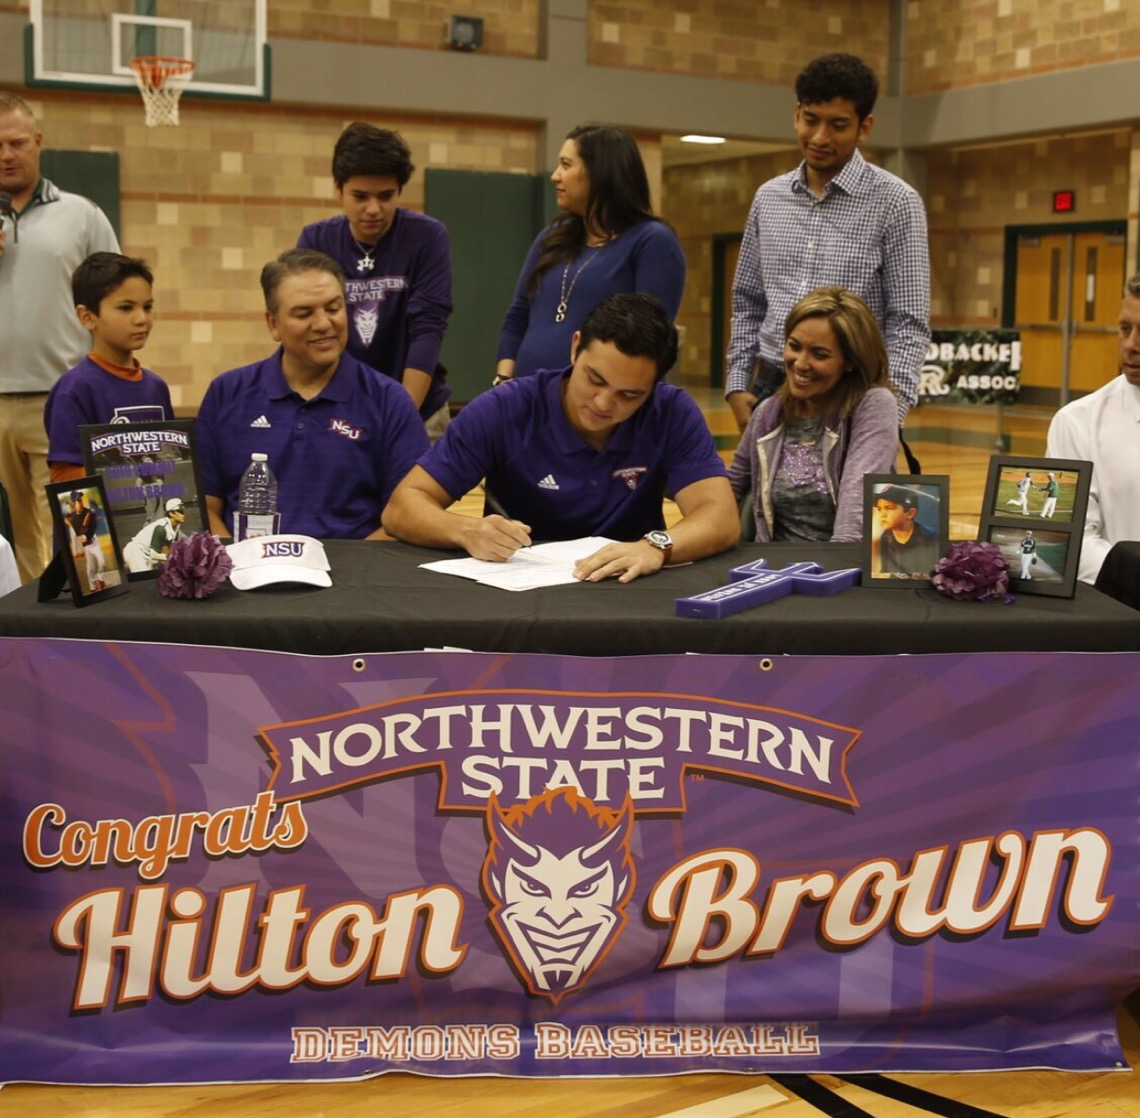 Hilton Brown NLI